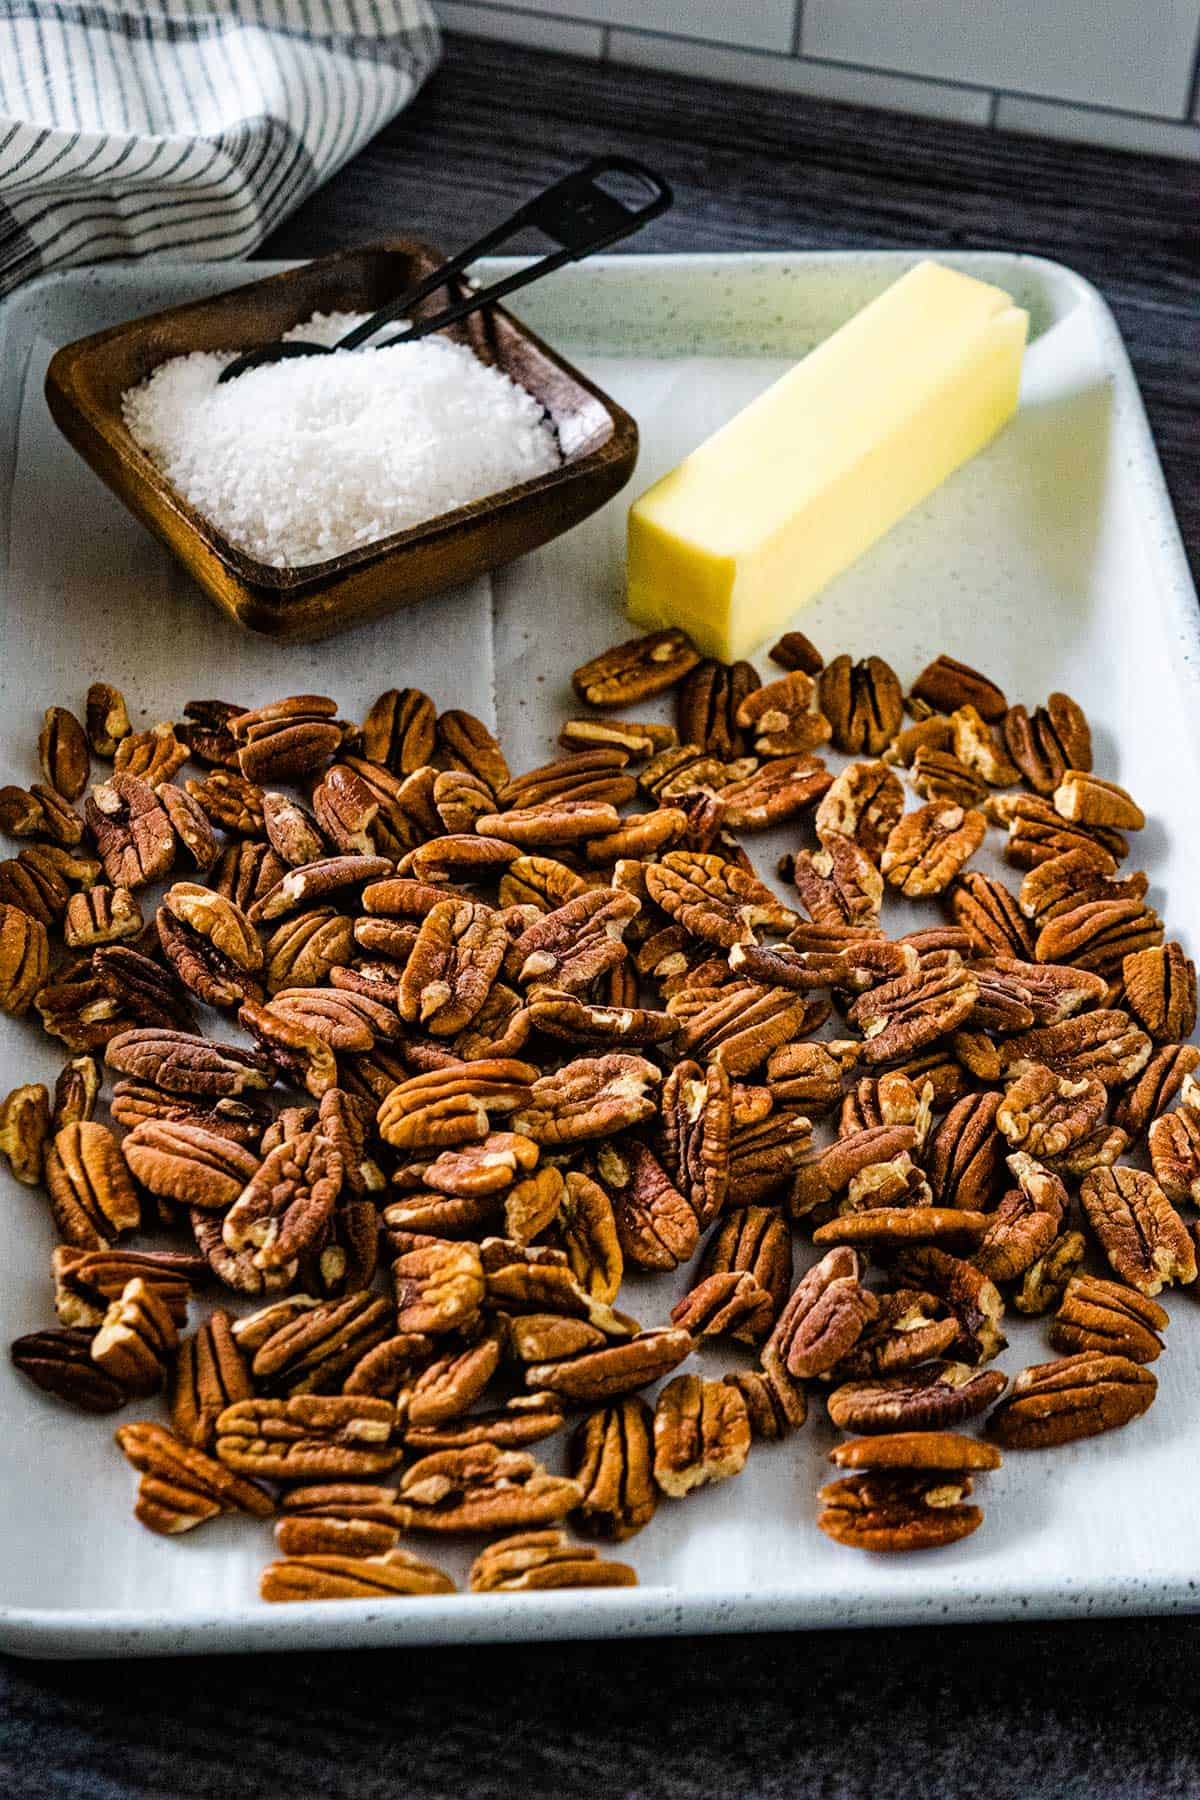 Toasted pecan ingredients pecans, butter, and salt on a white baking tray.